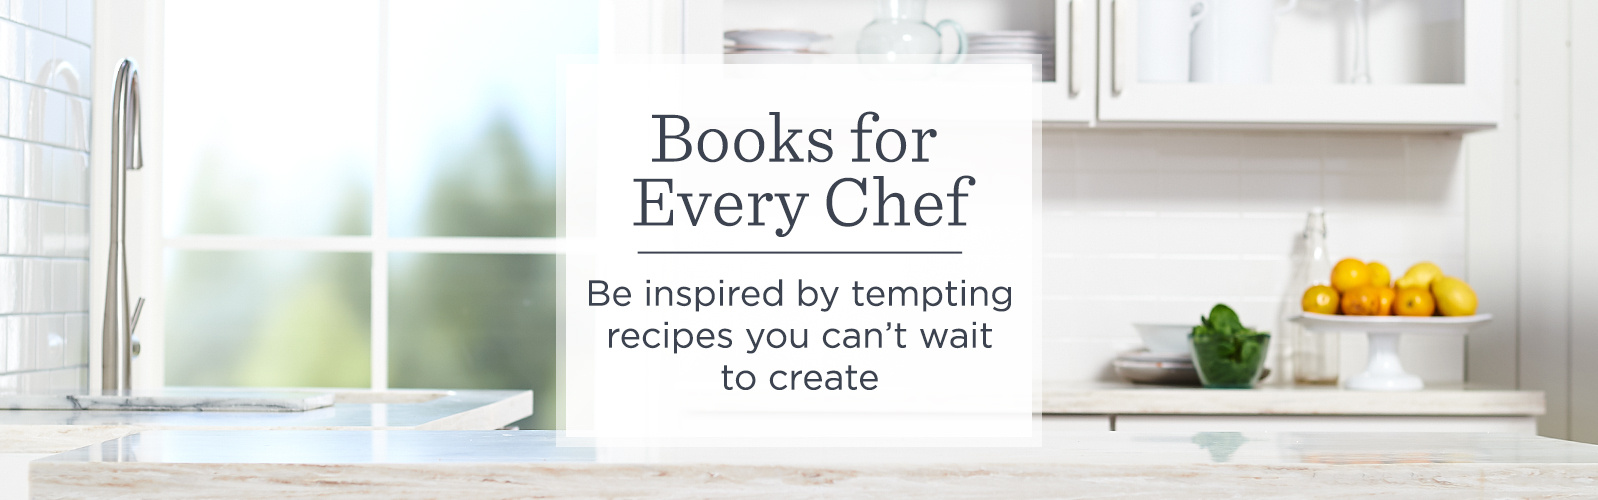 Books for Every Chef. Be inspired by tempting recipes you can't wait to create